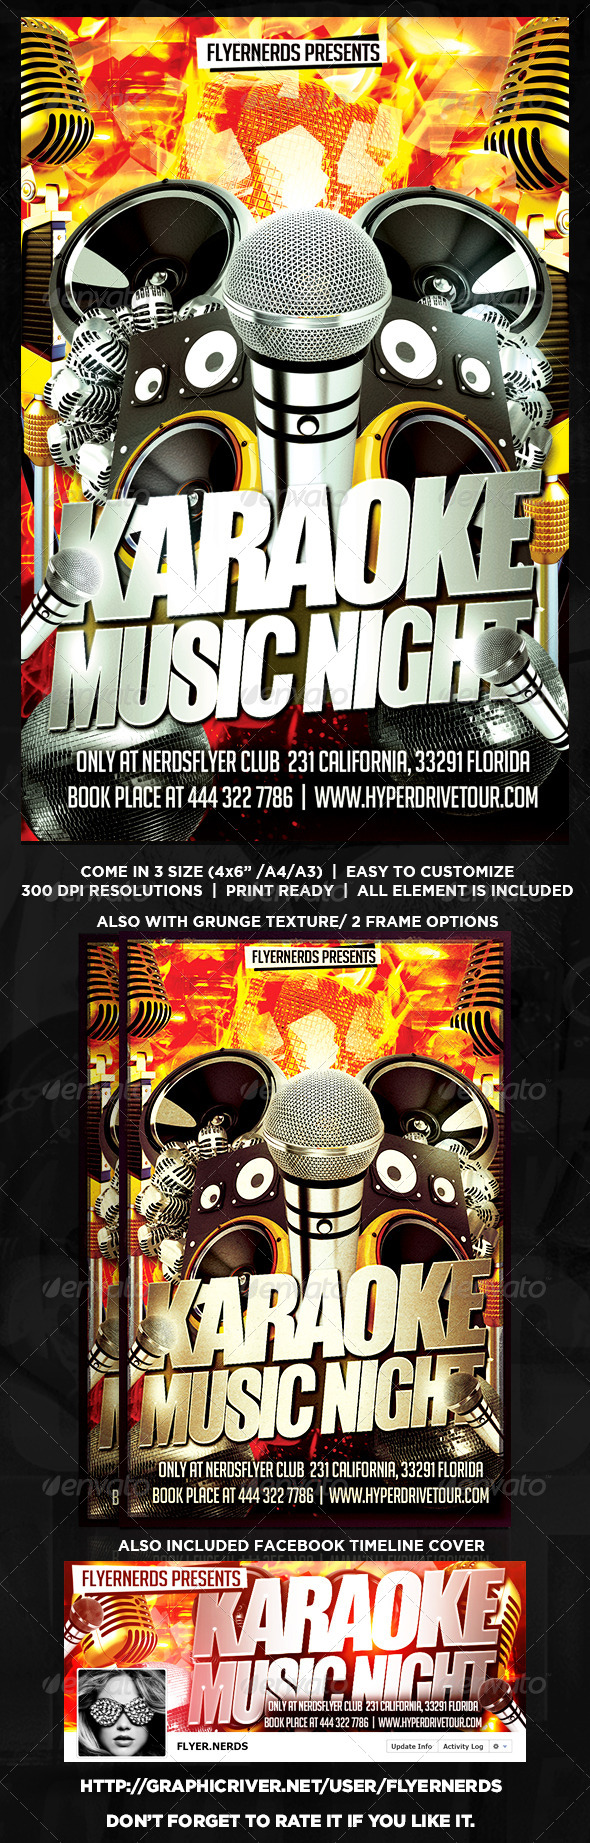 GraphicRiver Karaoke Music Night Flyer 8759814